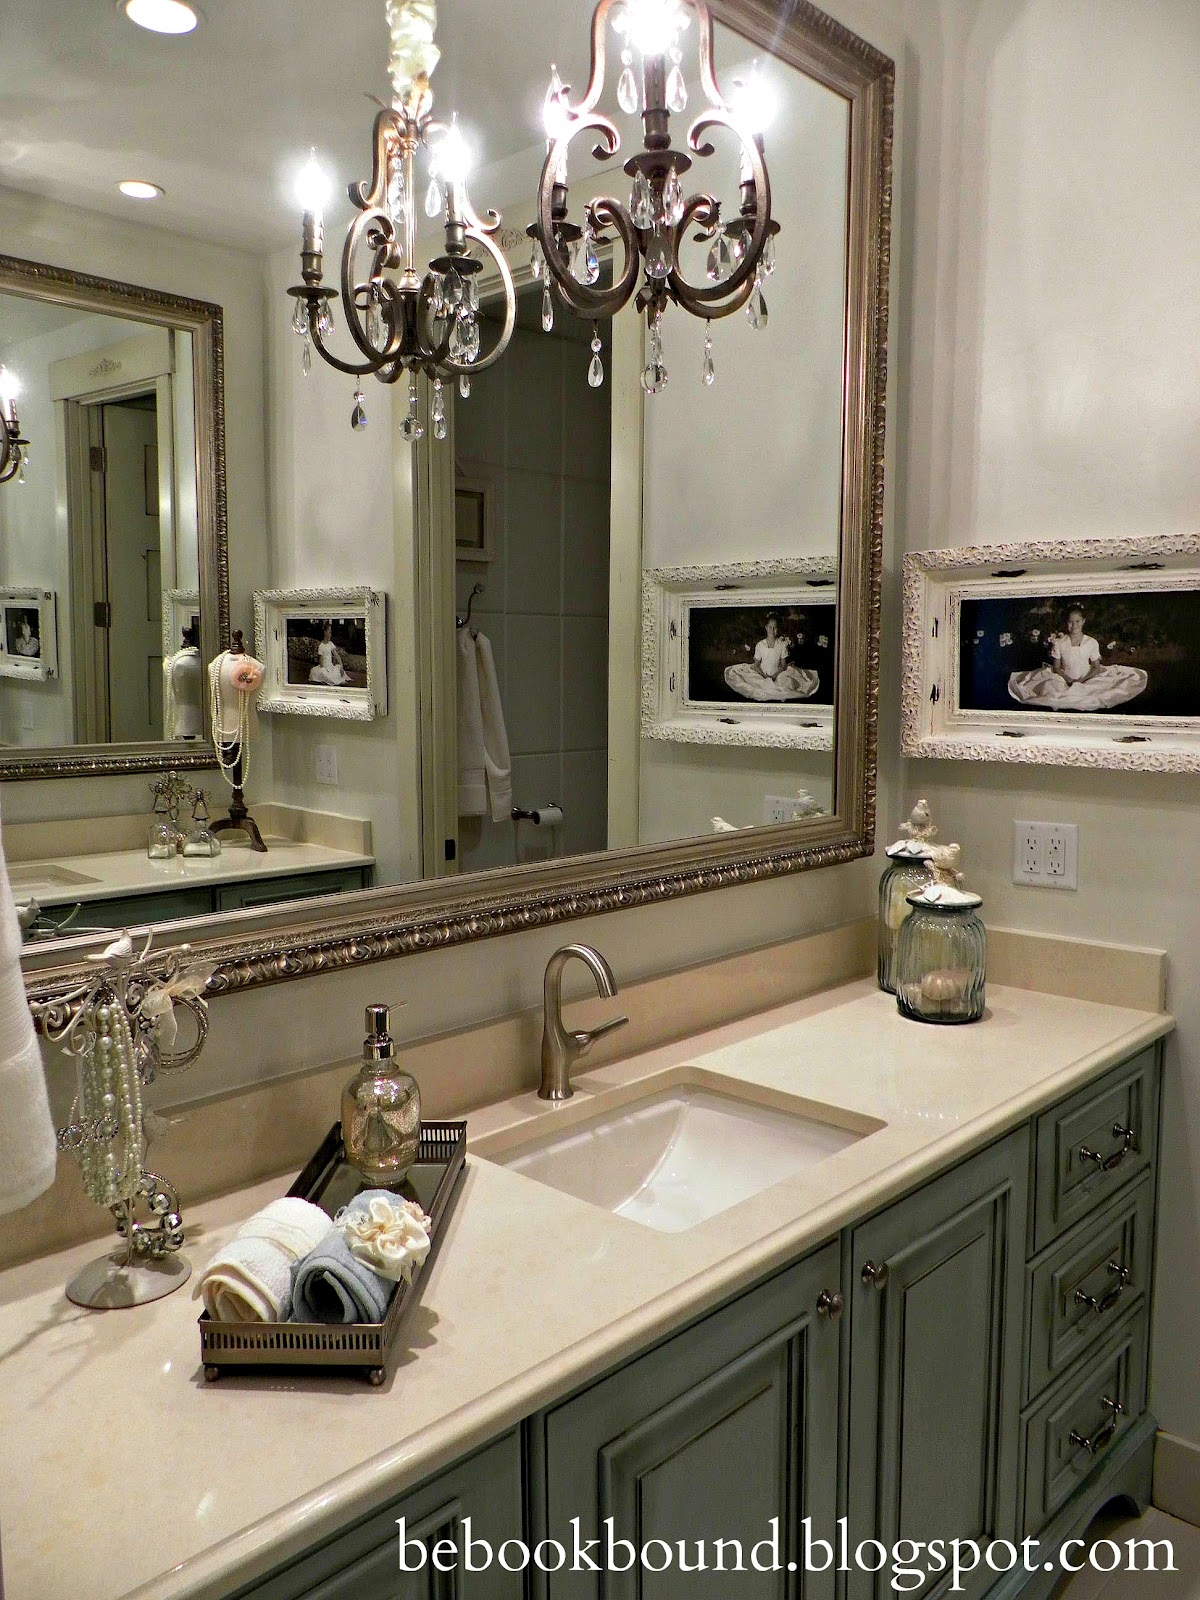 Inspiration about Chandelier For Bathroom Home Design Ideas Pertaining To Chandelier In The Bathroom (#8 of 12)